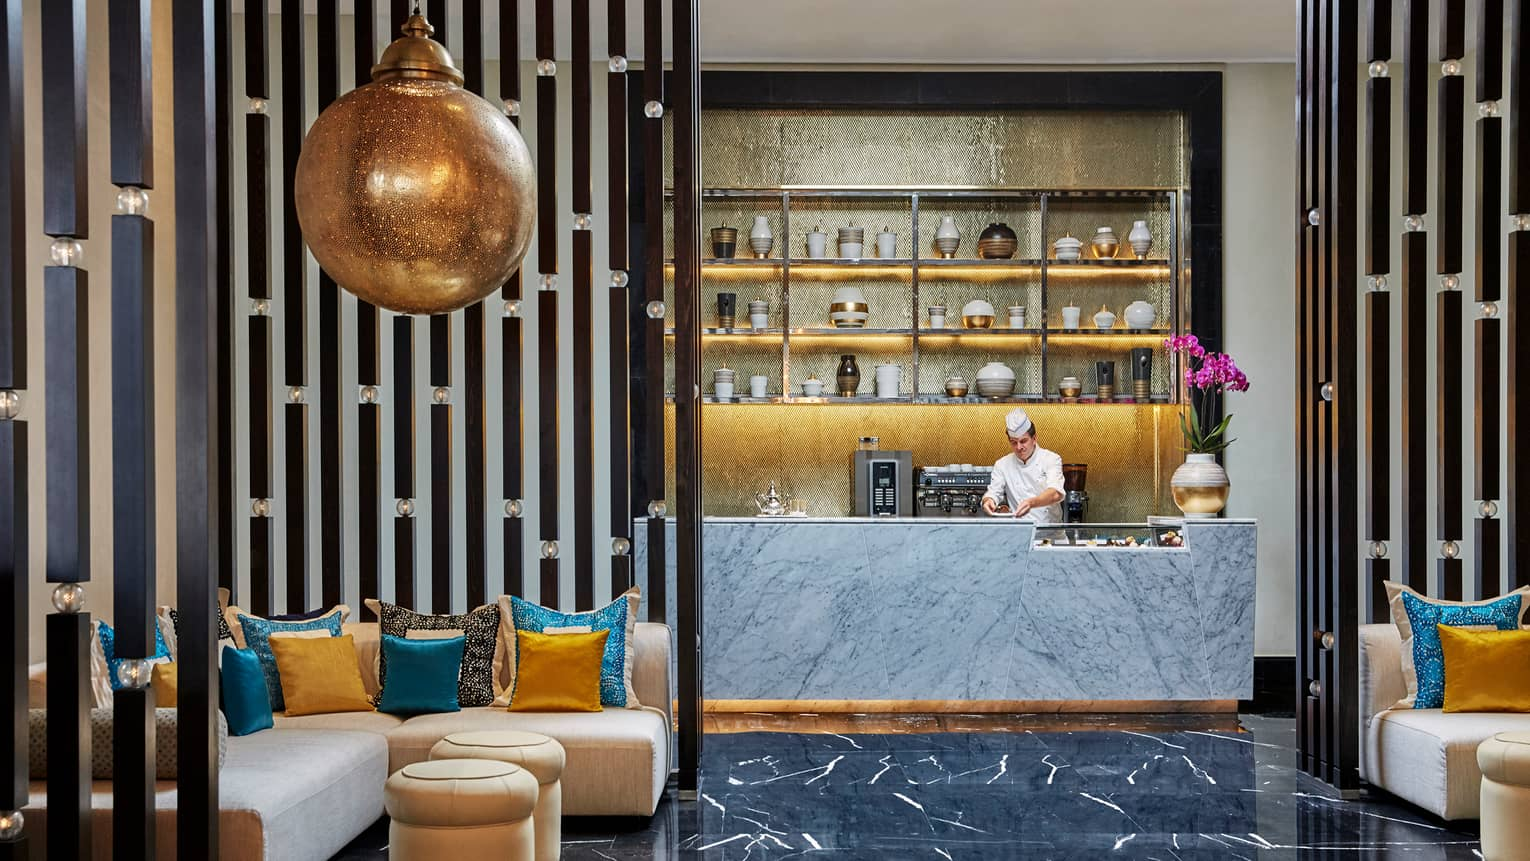 Chef behind counter, Mint lounge area with large brass hanging lamp, L-shaped sofas with colourful pillows, gilded accents